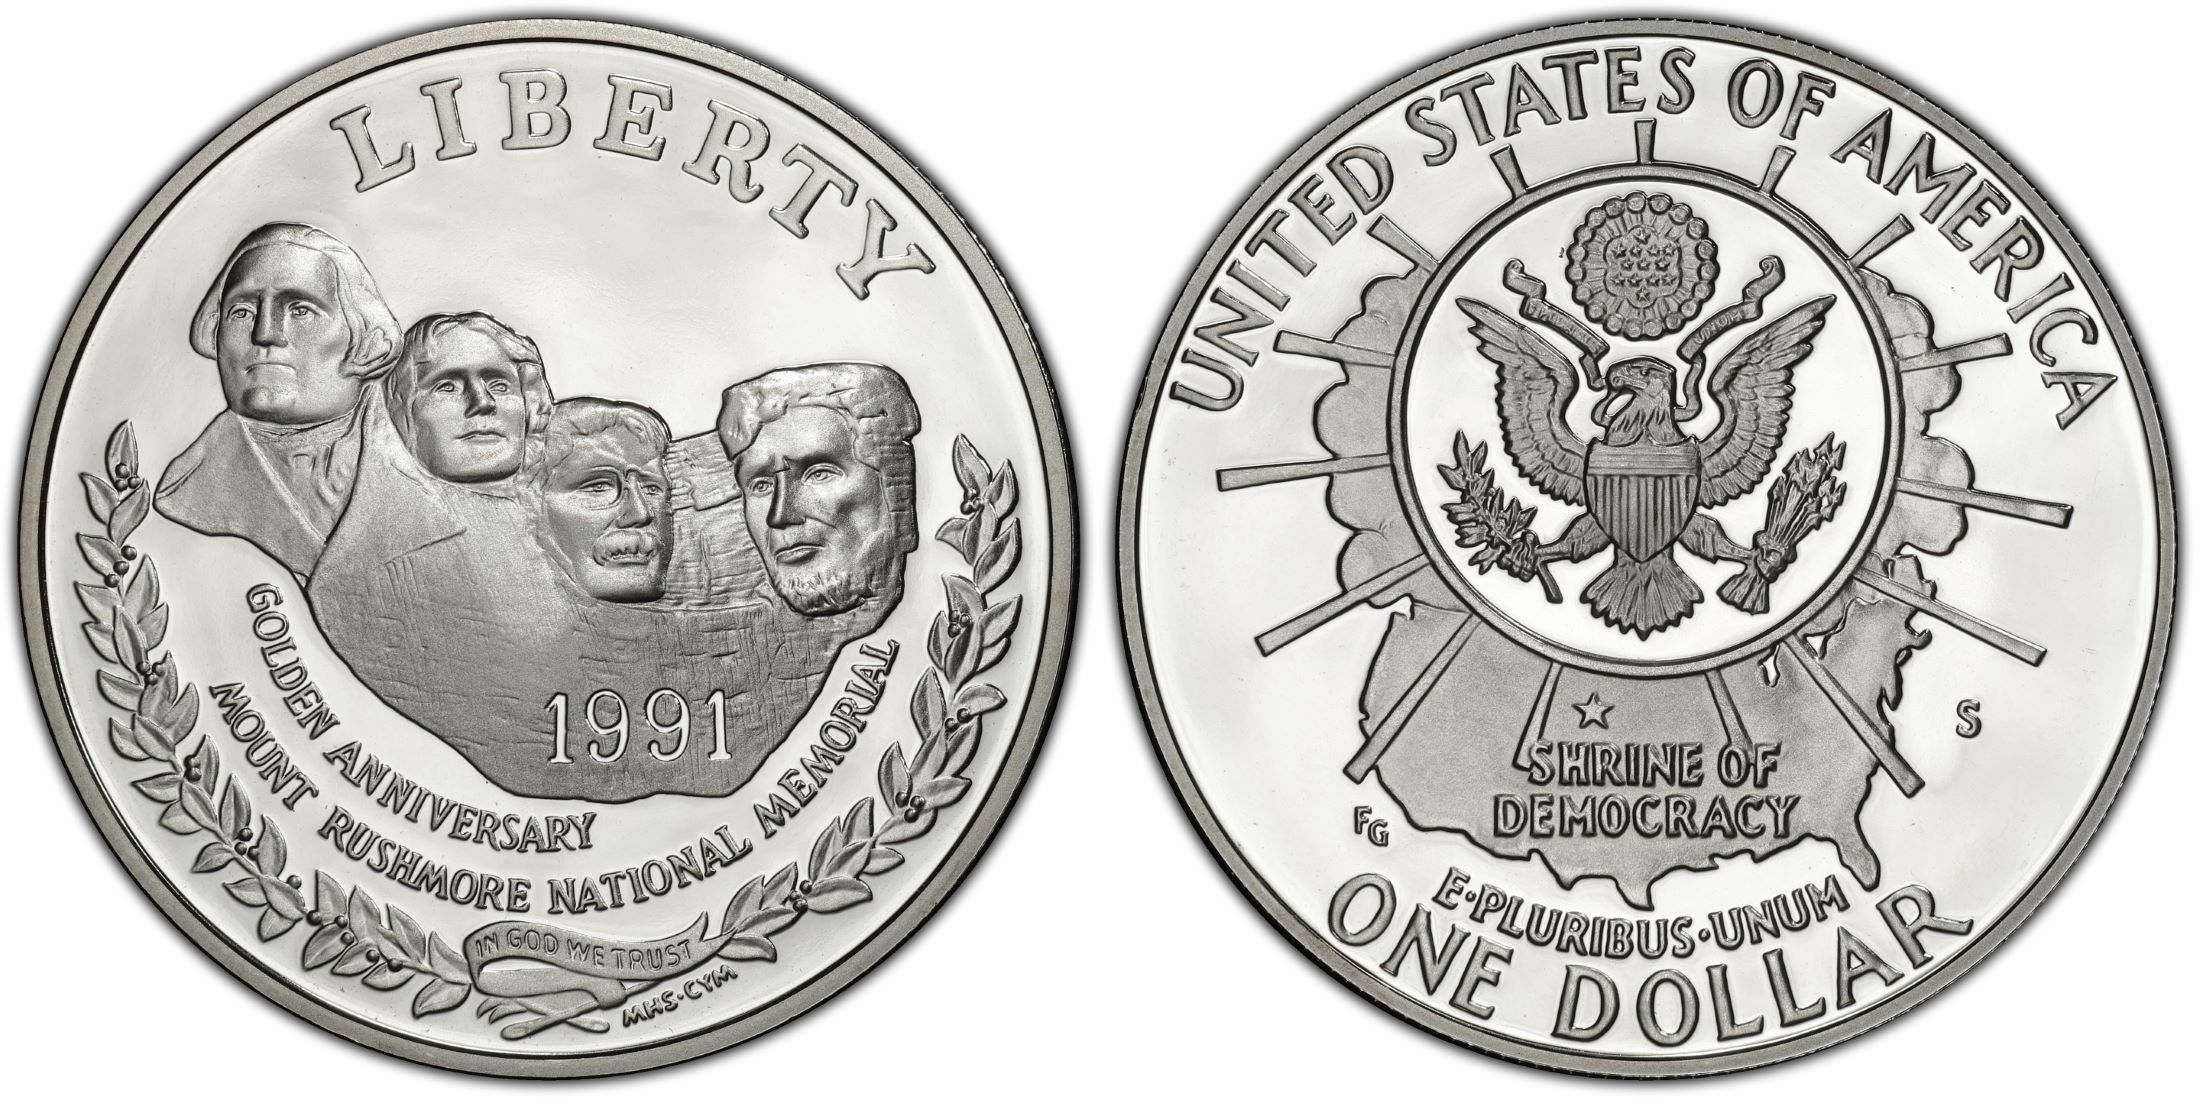 1991 Mount Rushmore Proof 90/% Silver Dollar Commemorative US Mint $1 Coin ONLY